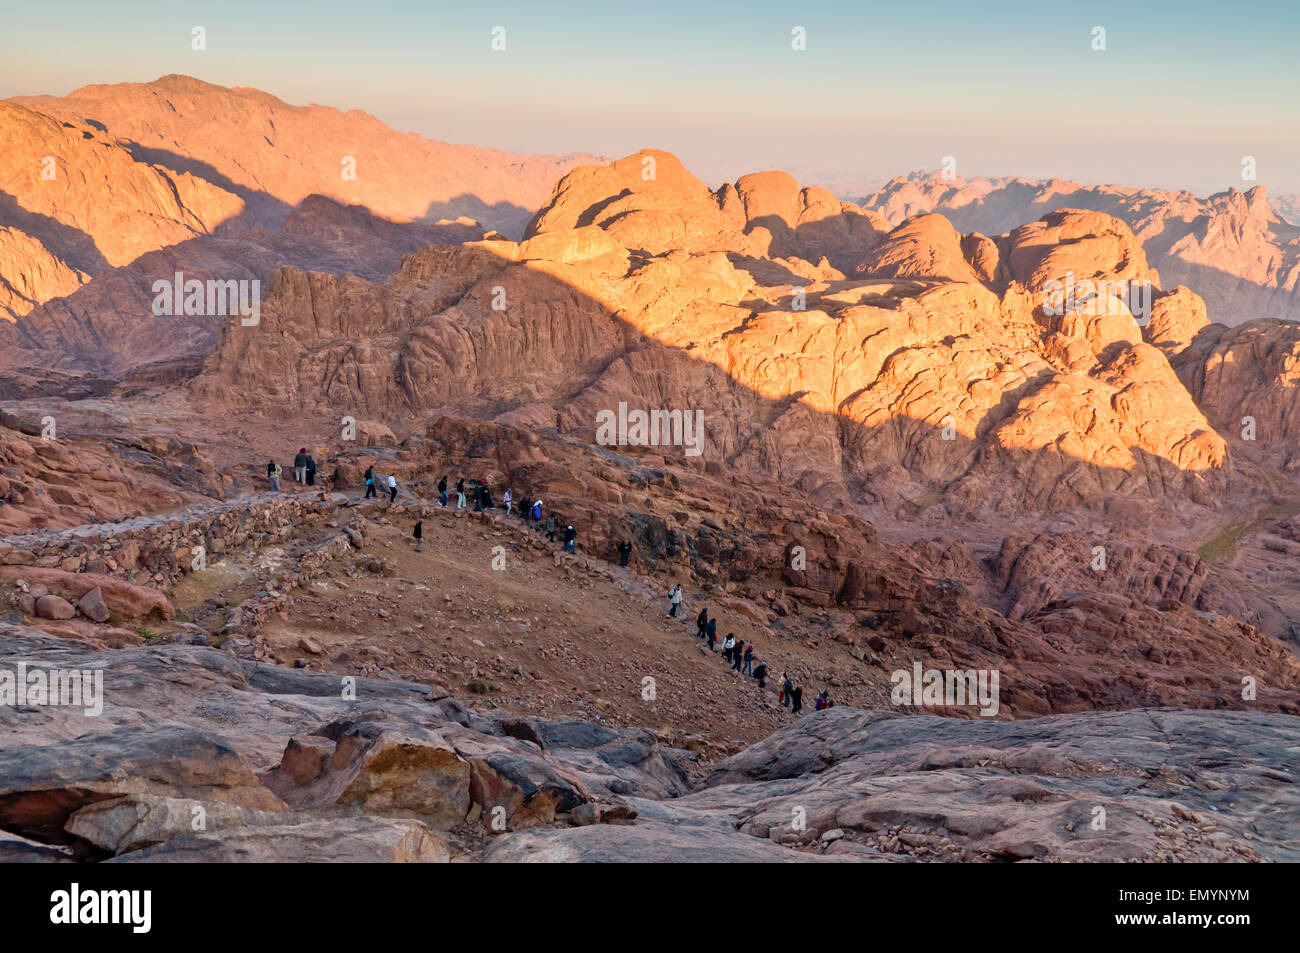 Pilgrims and tourists on the pathway from the Mount Sinai peak - Stock Image